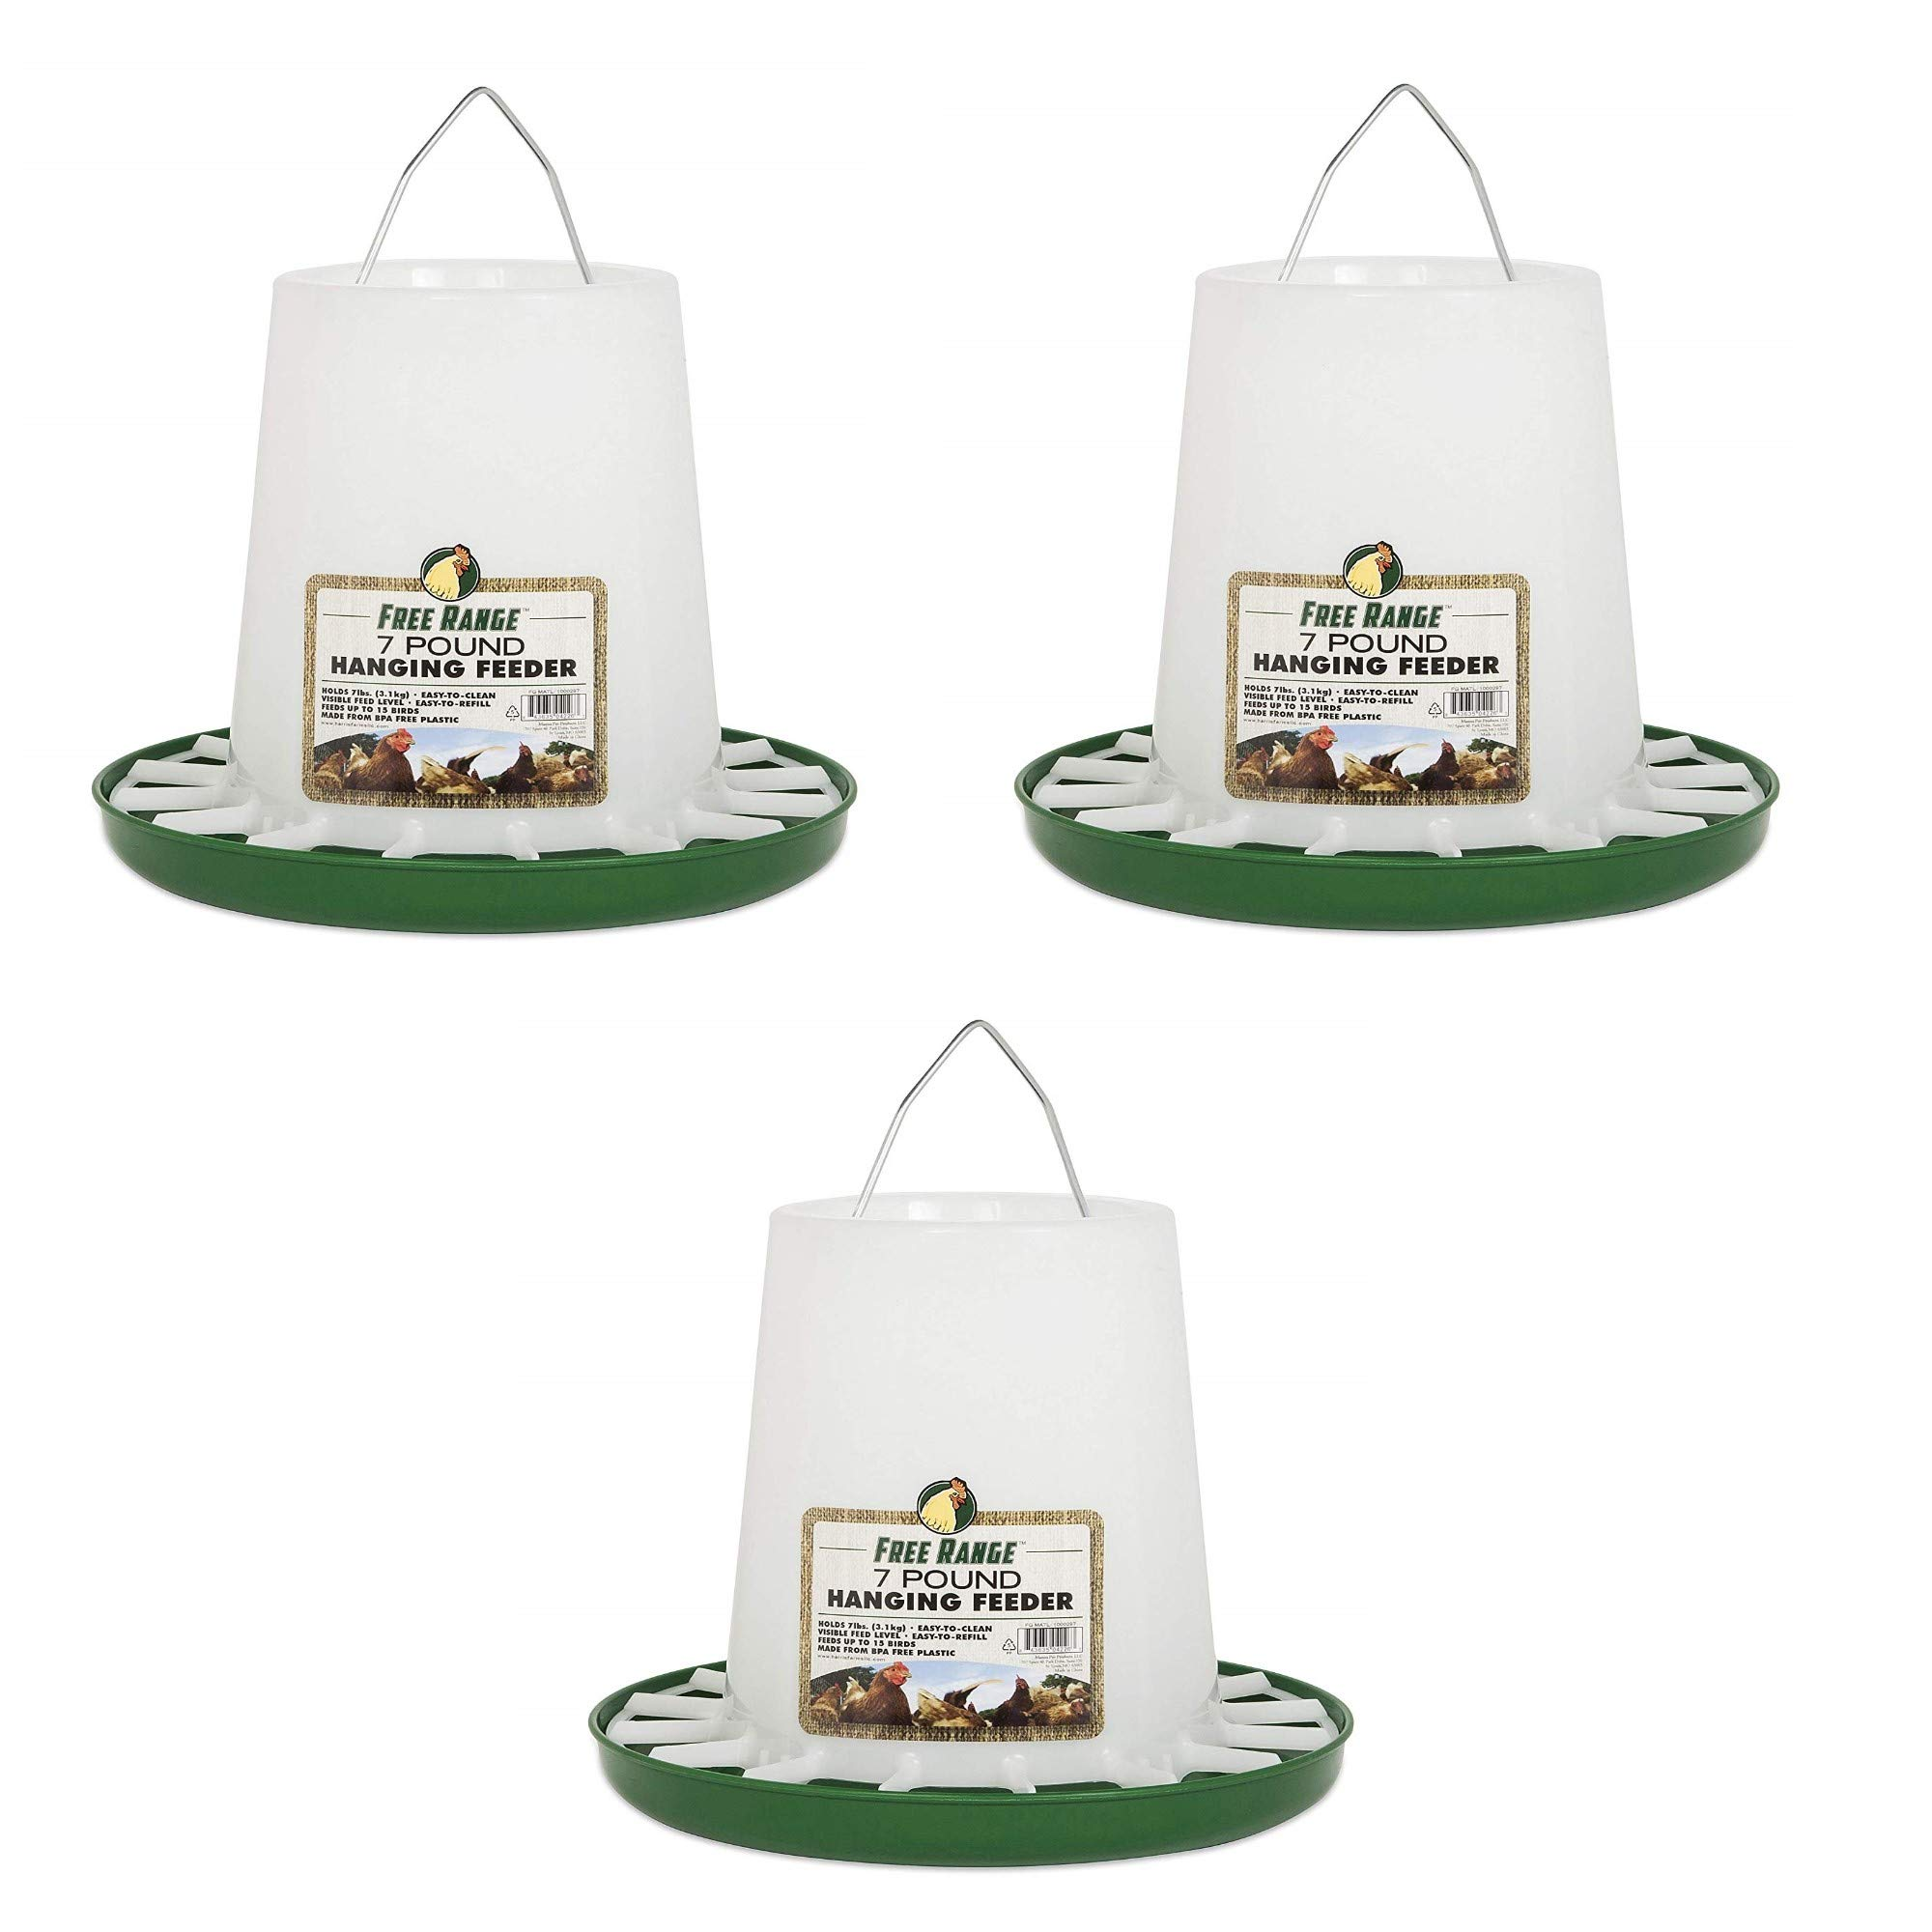 Harris Farms Free Range Hanging Poultry Feeder, Plastic 7 Pound - 3 Pack by Harris Farms